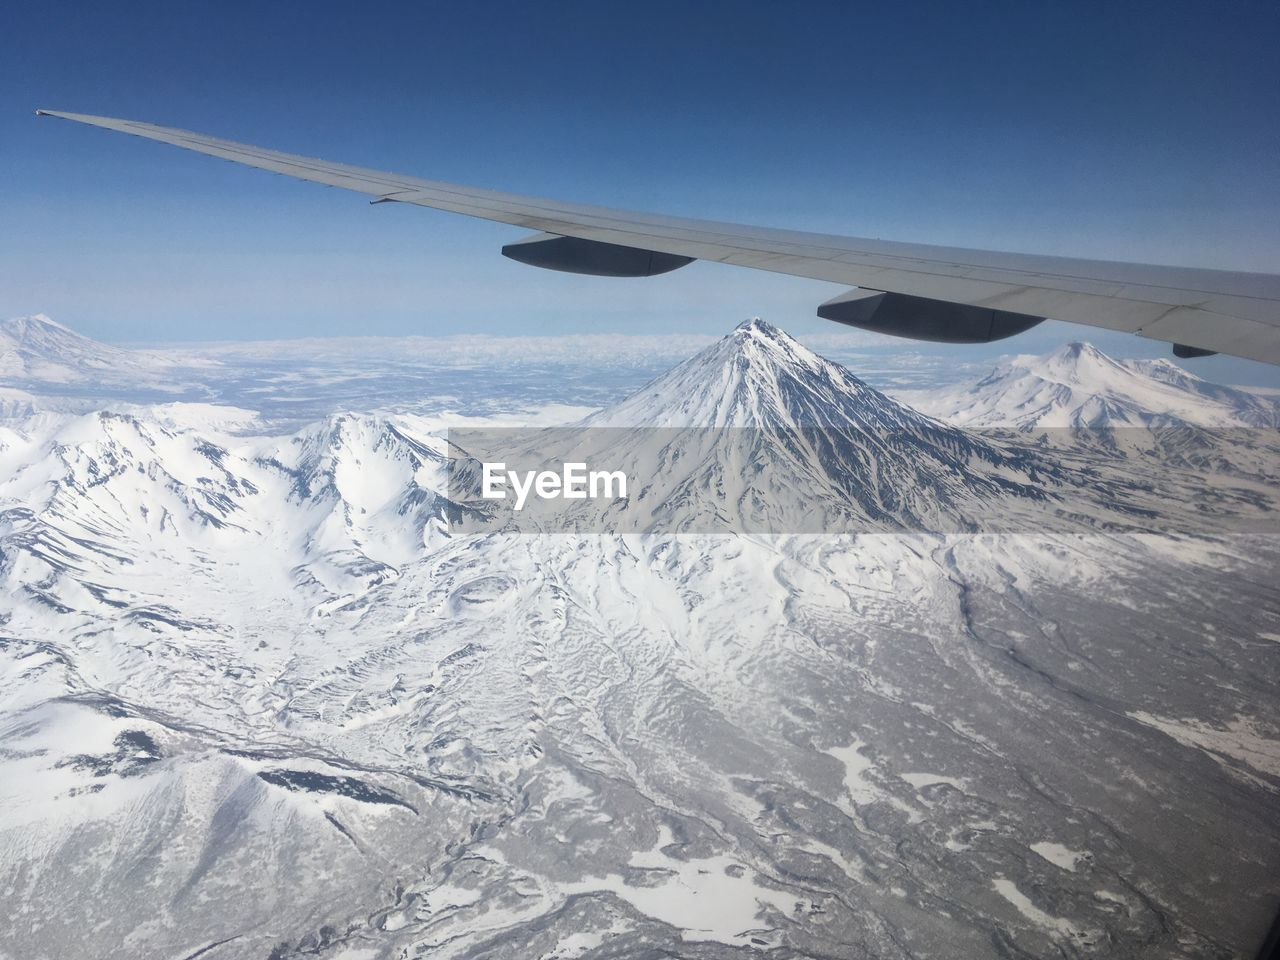 Aircraft over snowcapped mountains against sky